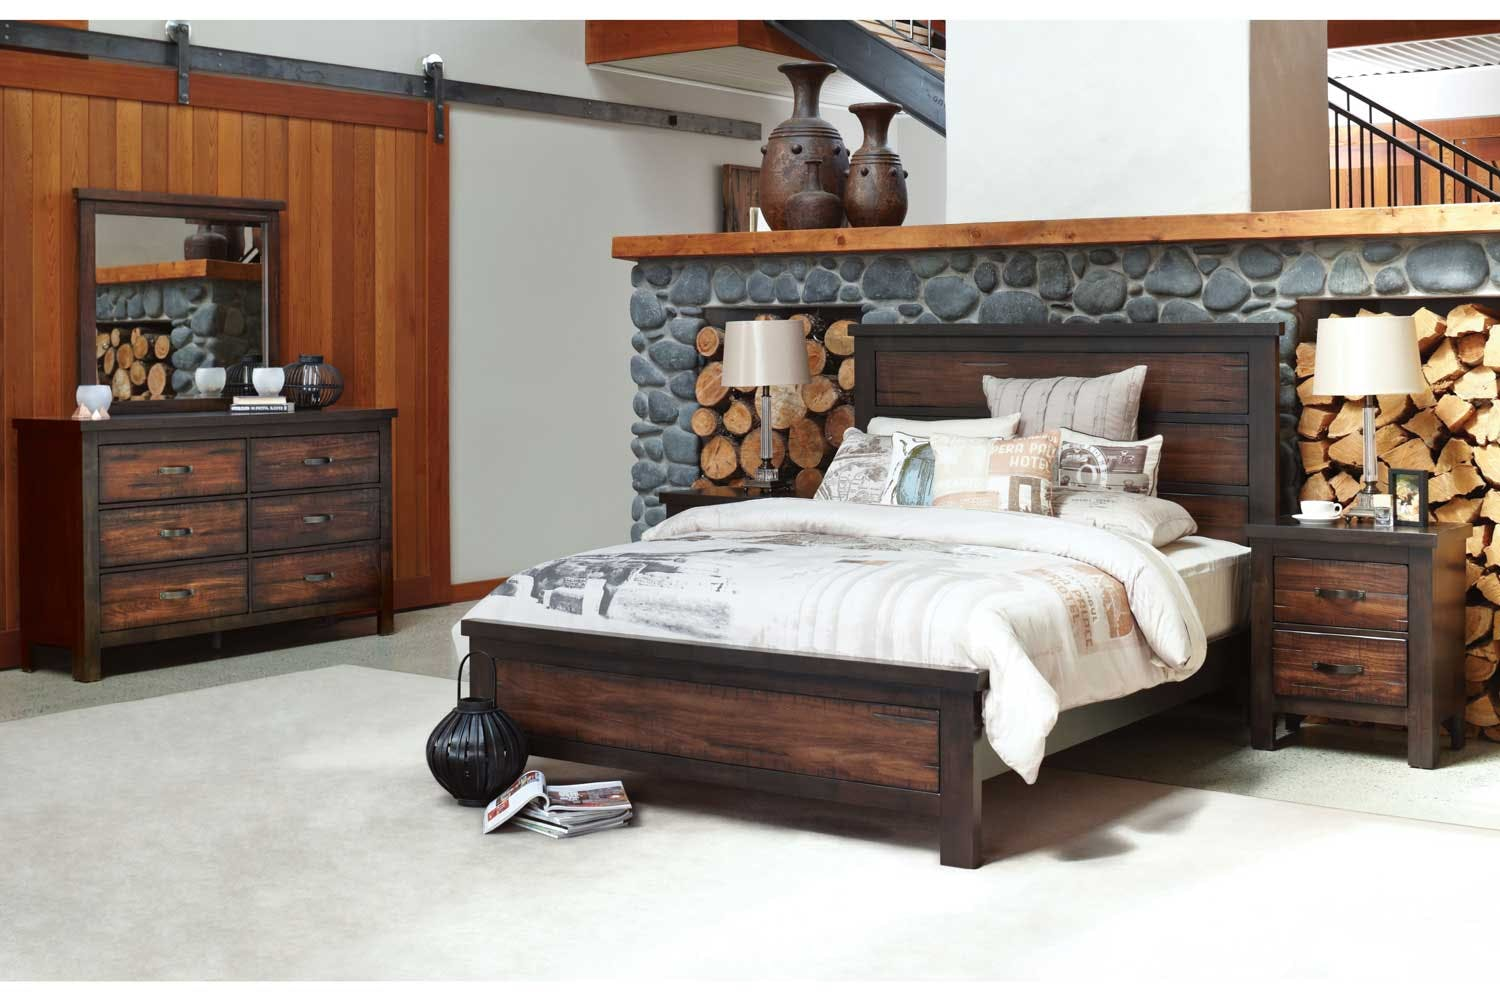 New Bedroom Furniture Anchorage Bedroom Suite By Stoke Furniture Harvey Norman New Zealand